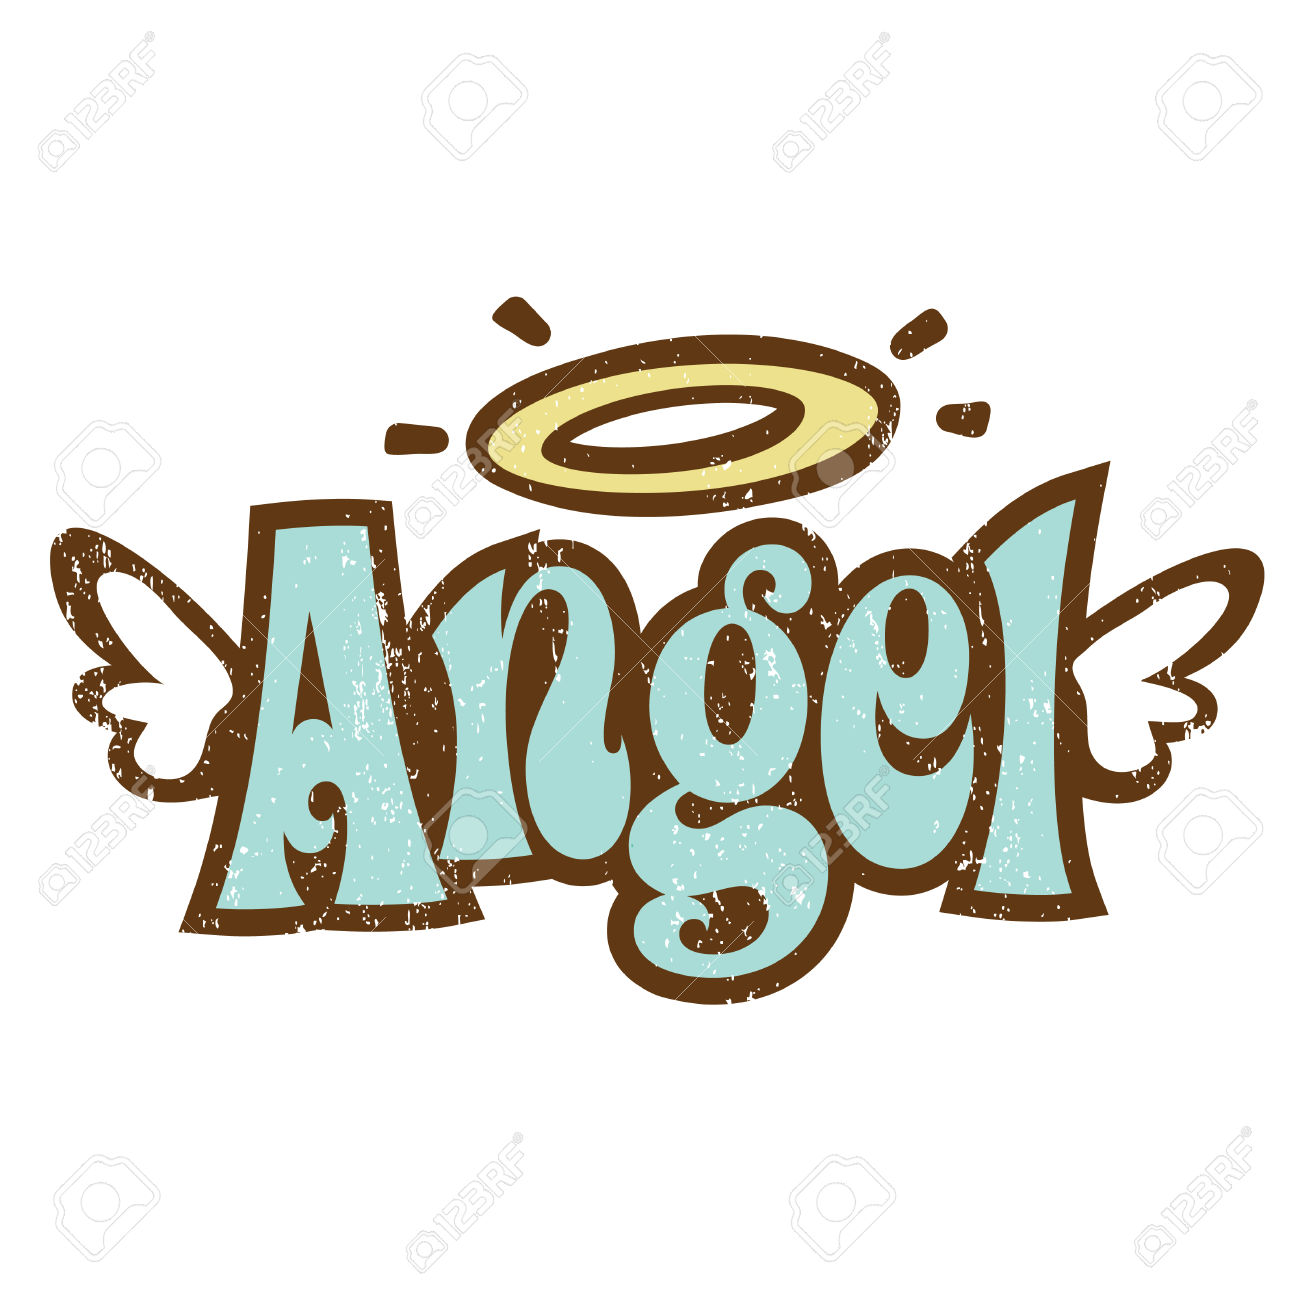 Angel clipart word. Pencil and in color